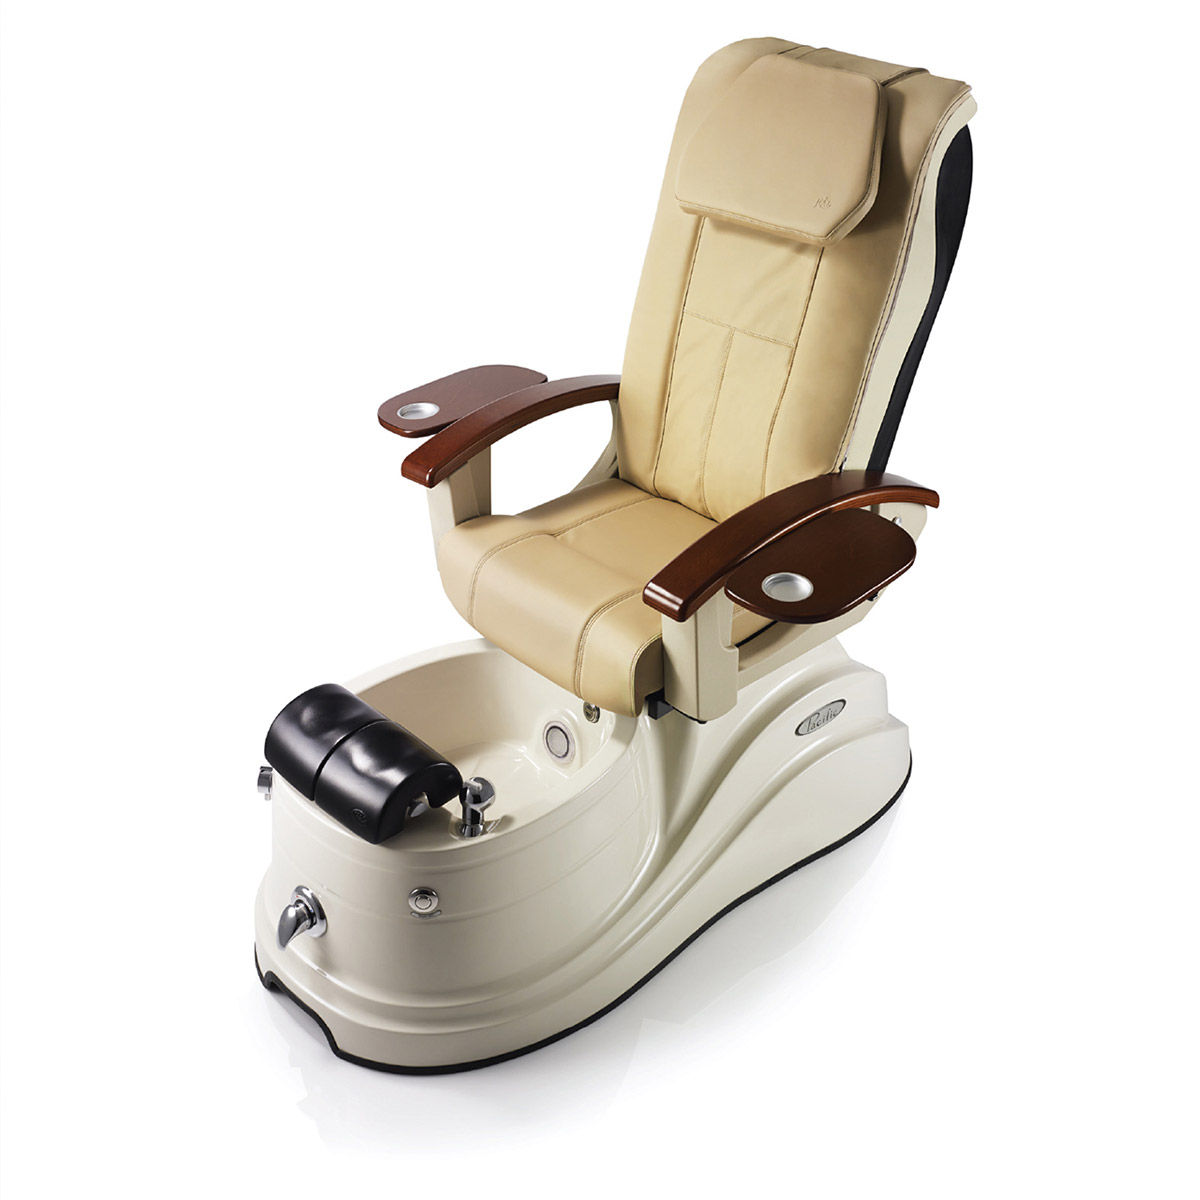 J & A Pacific MX Pipeless Whirlpool Pedicure Spa Chair  main product image